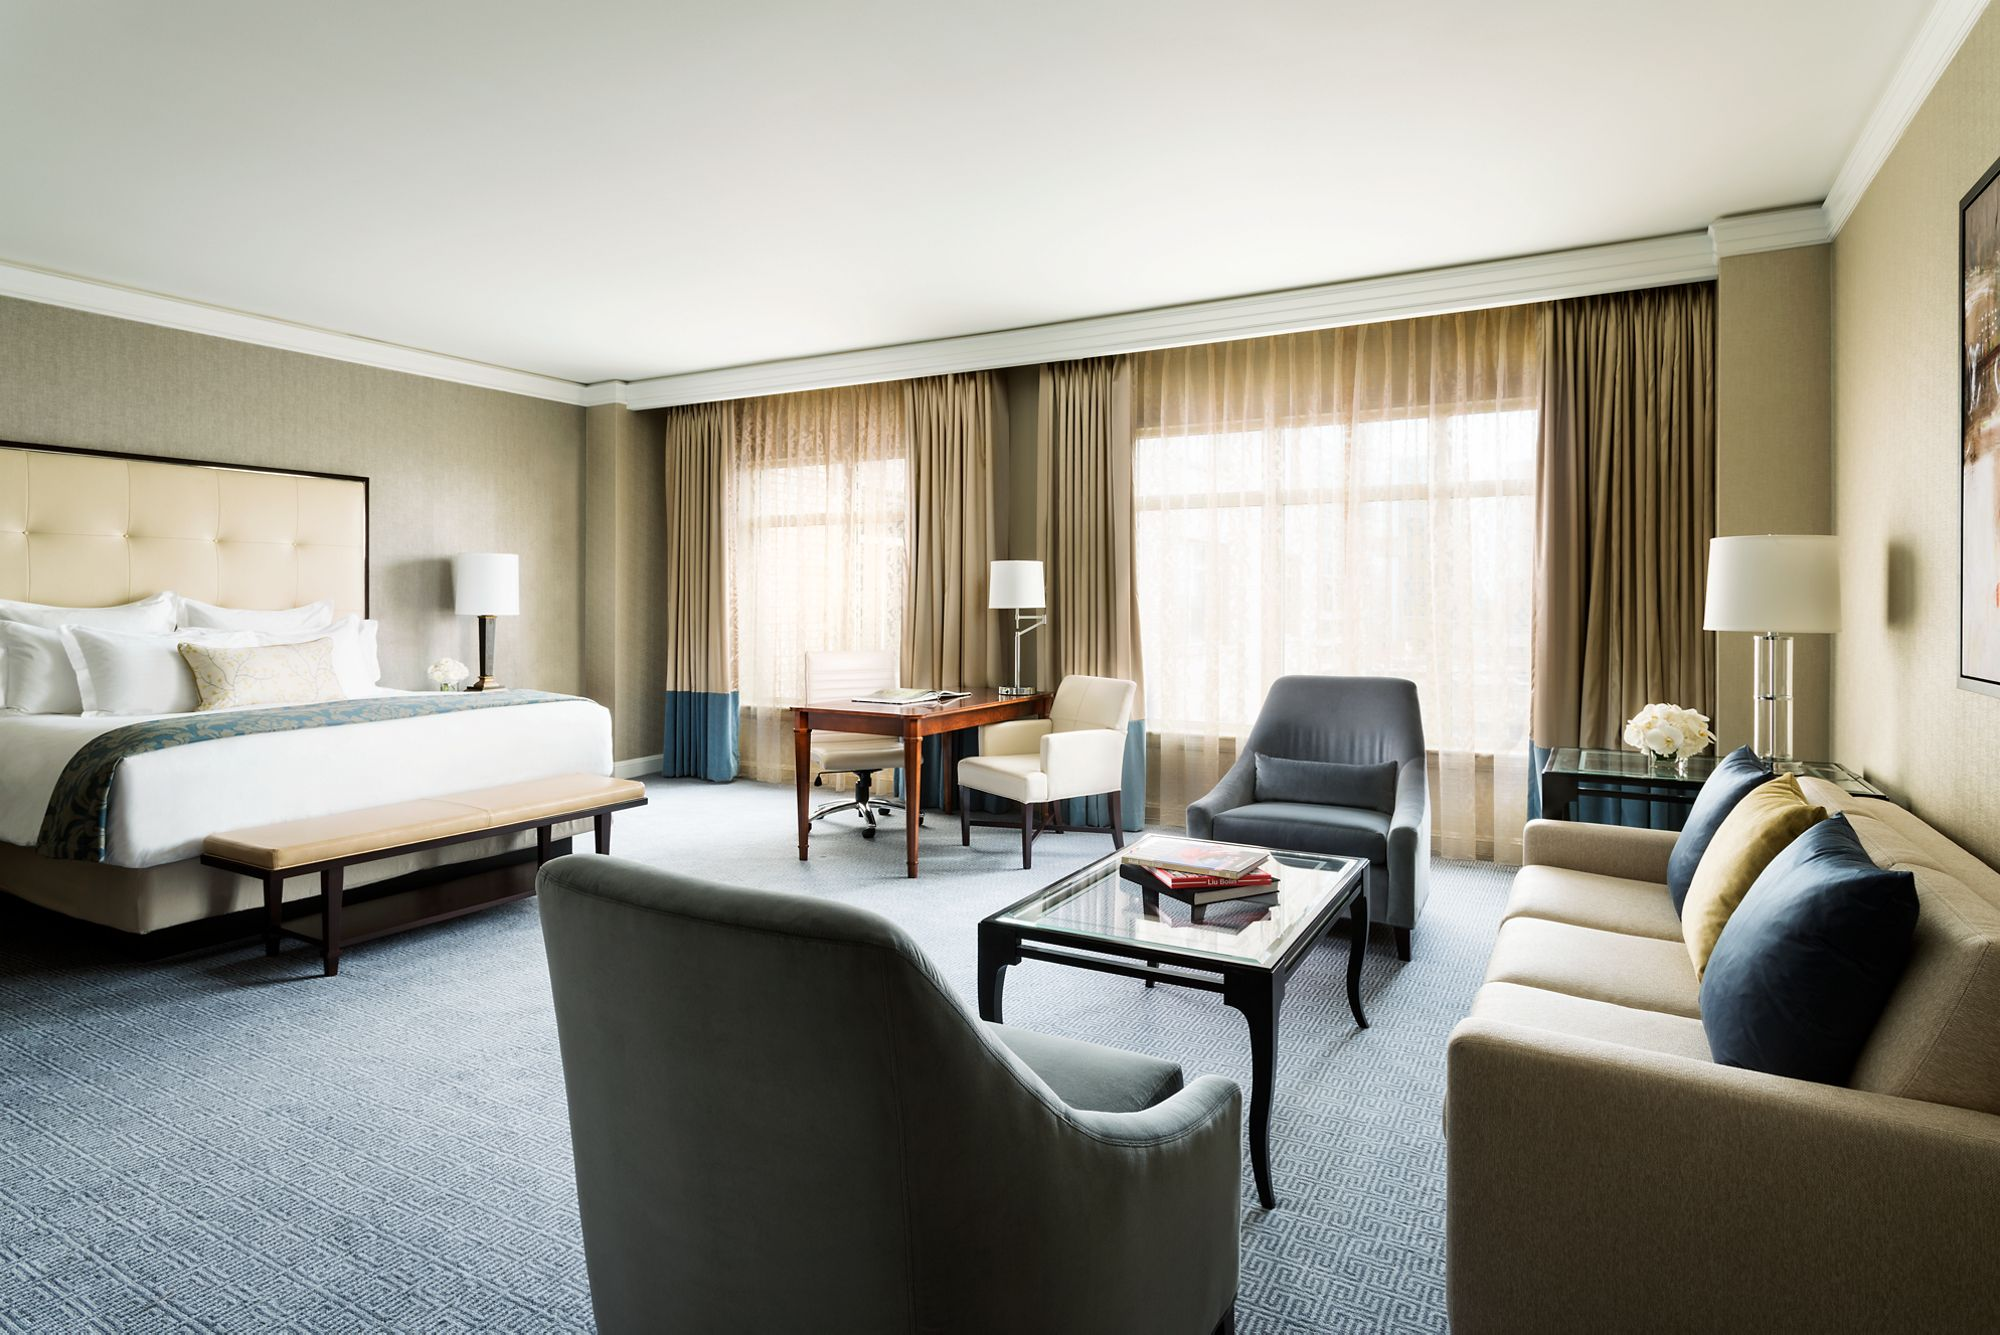 A large room with a king bed, spacious seating area, desk and two windows